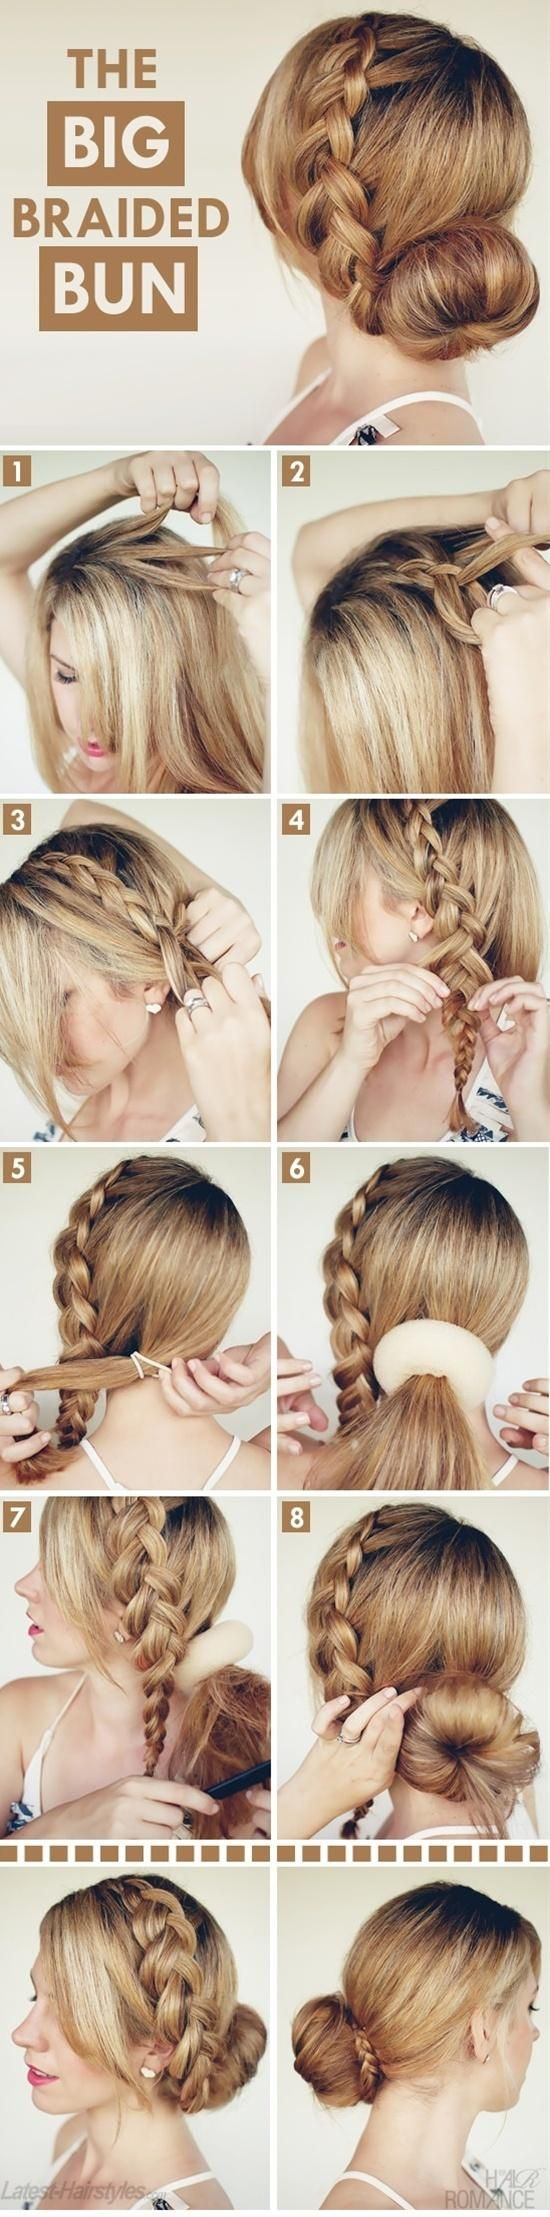 best hair images on pinterest beauty ideas beauty tips and